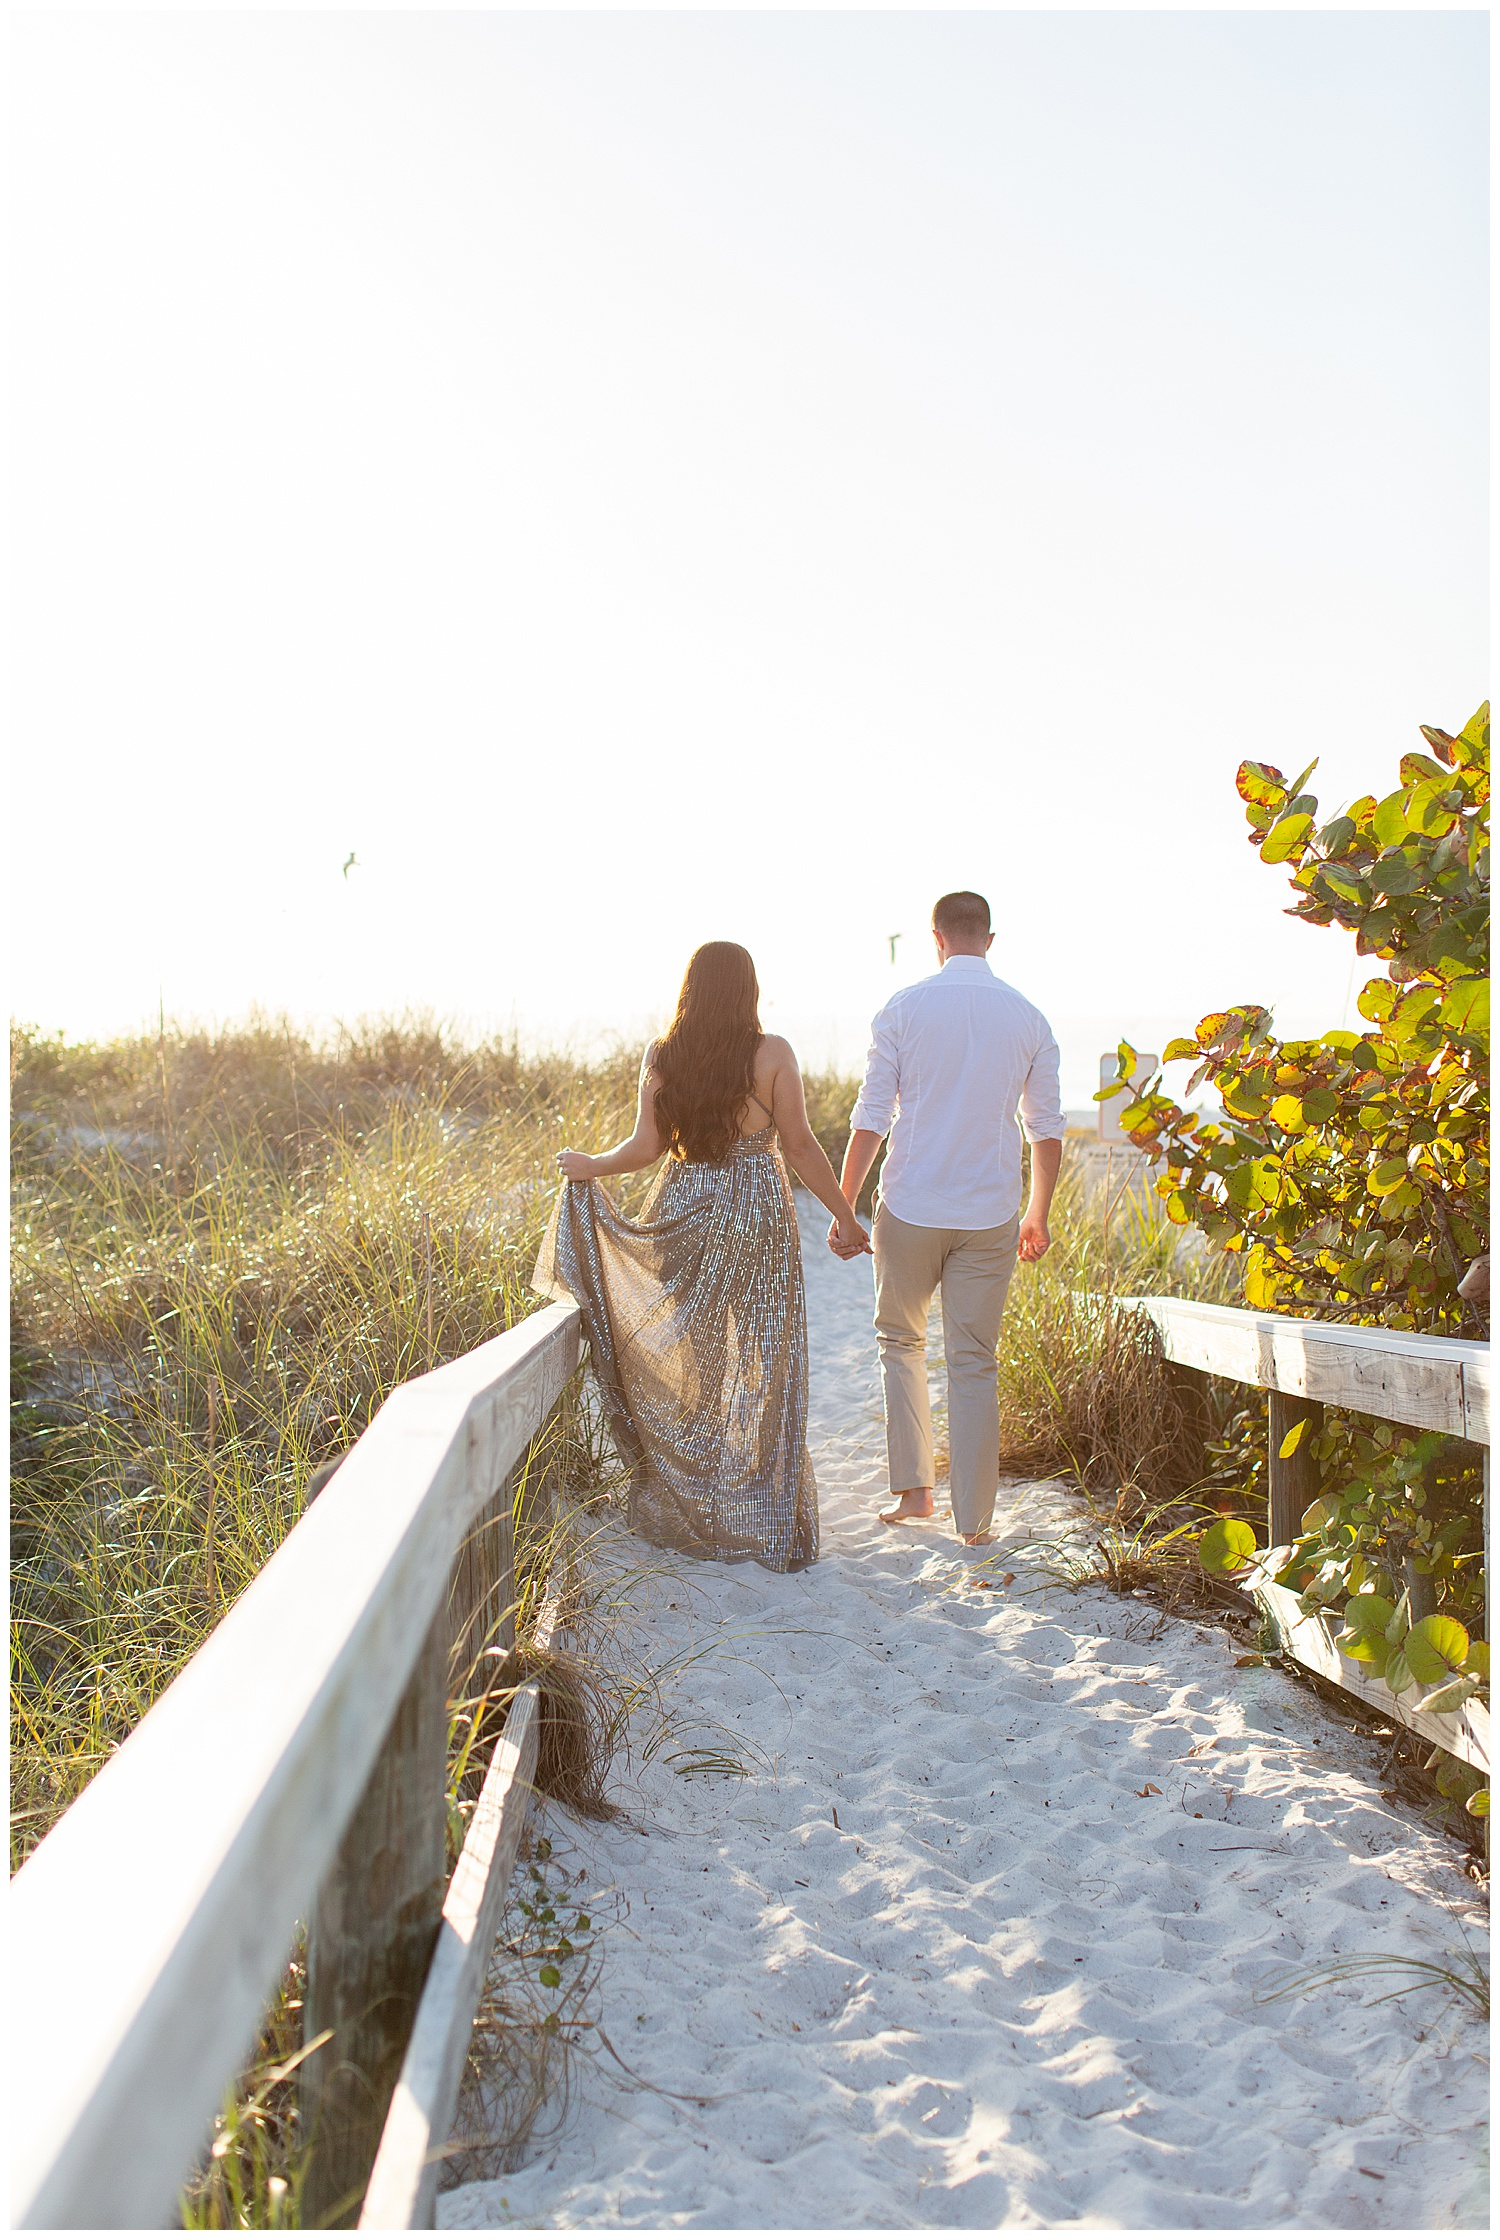 emily-belson-photography-florida-engagement-09.jpg